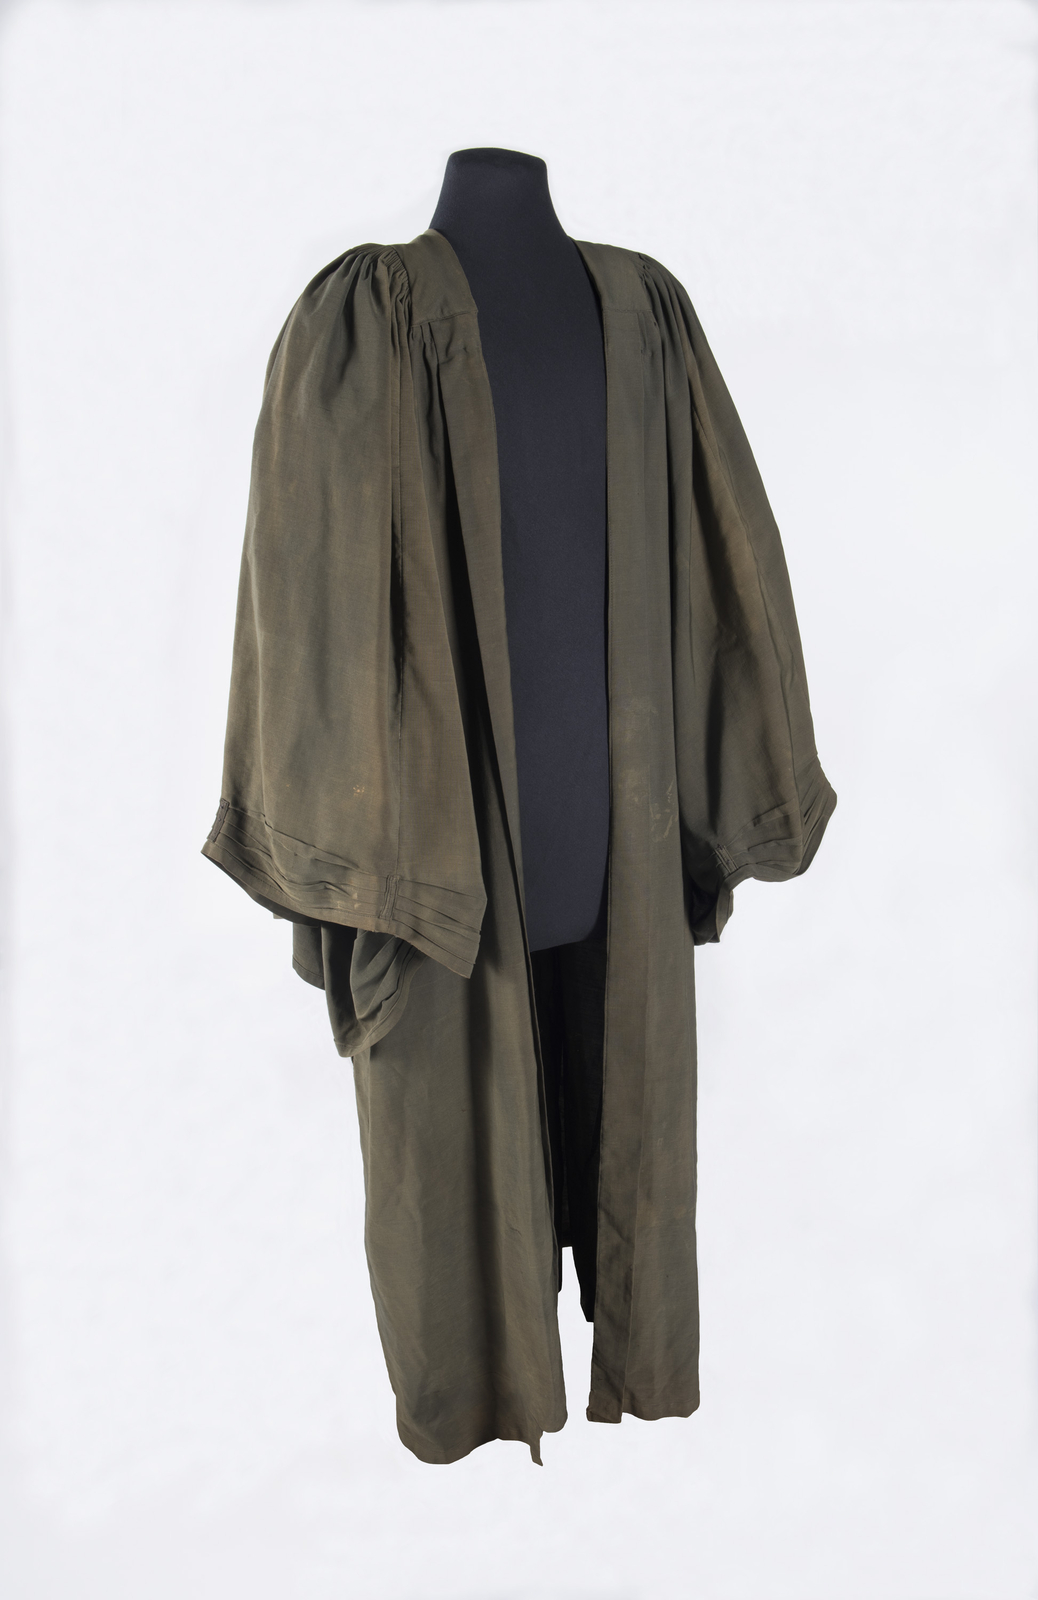 After over 3 years of investigation, all the pieces of evidence make a sound case for the robe having been wore by magistrate Hugh Richardson who presided over the three most famous court cases in Canadian history. Canadian Museum of History, 2013.54.1